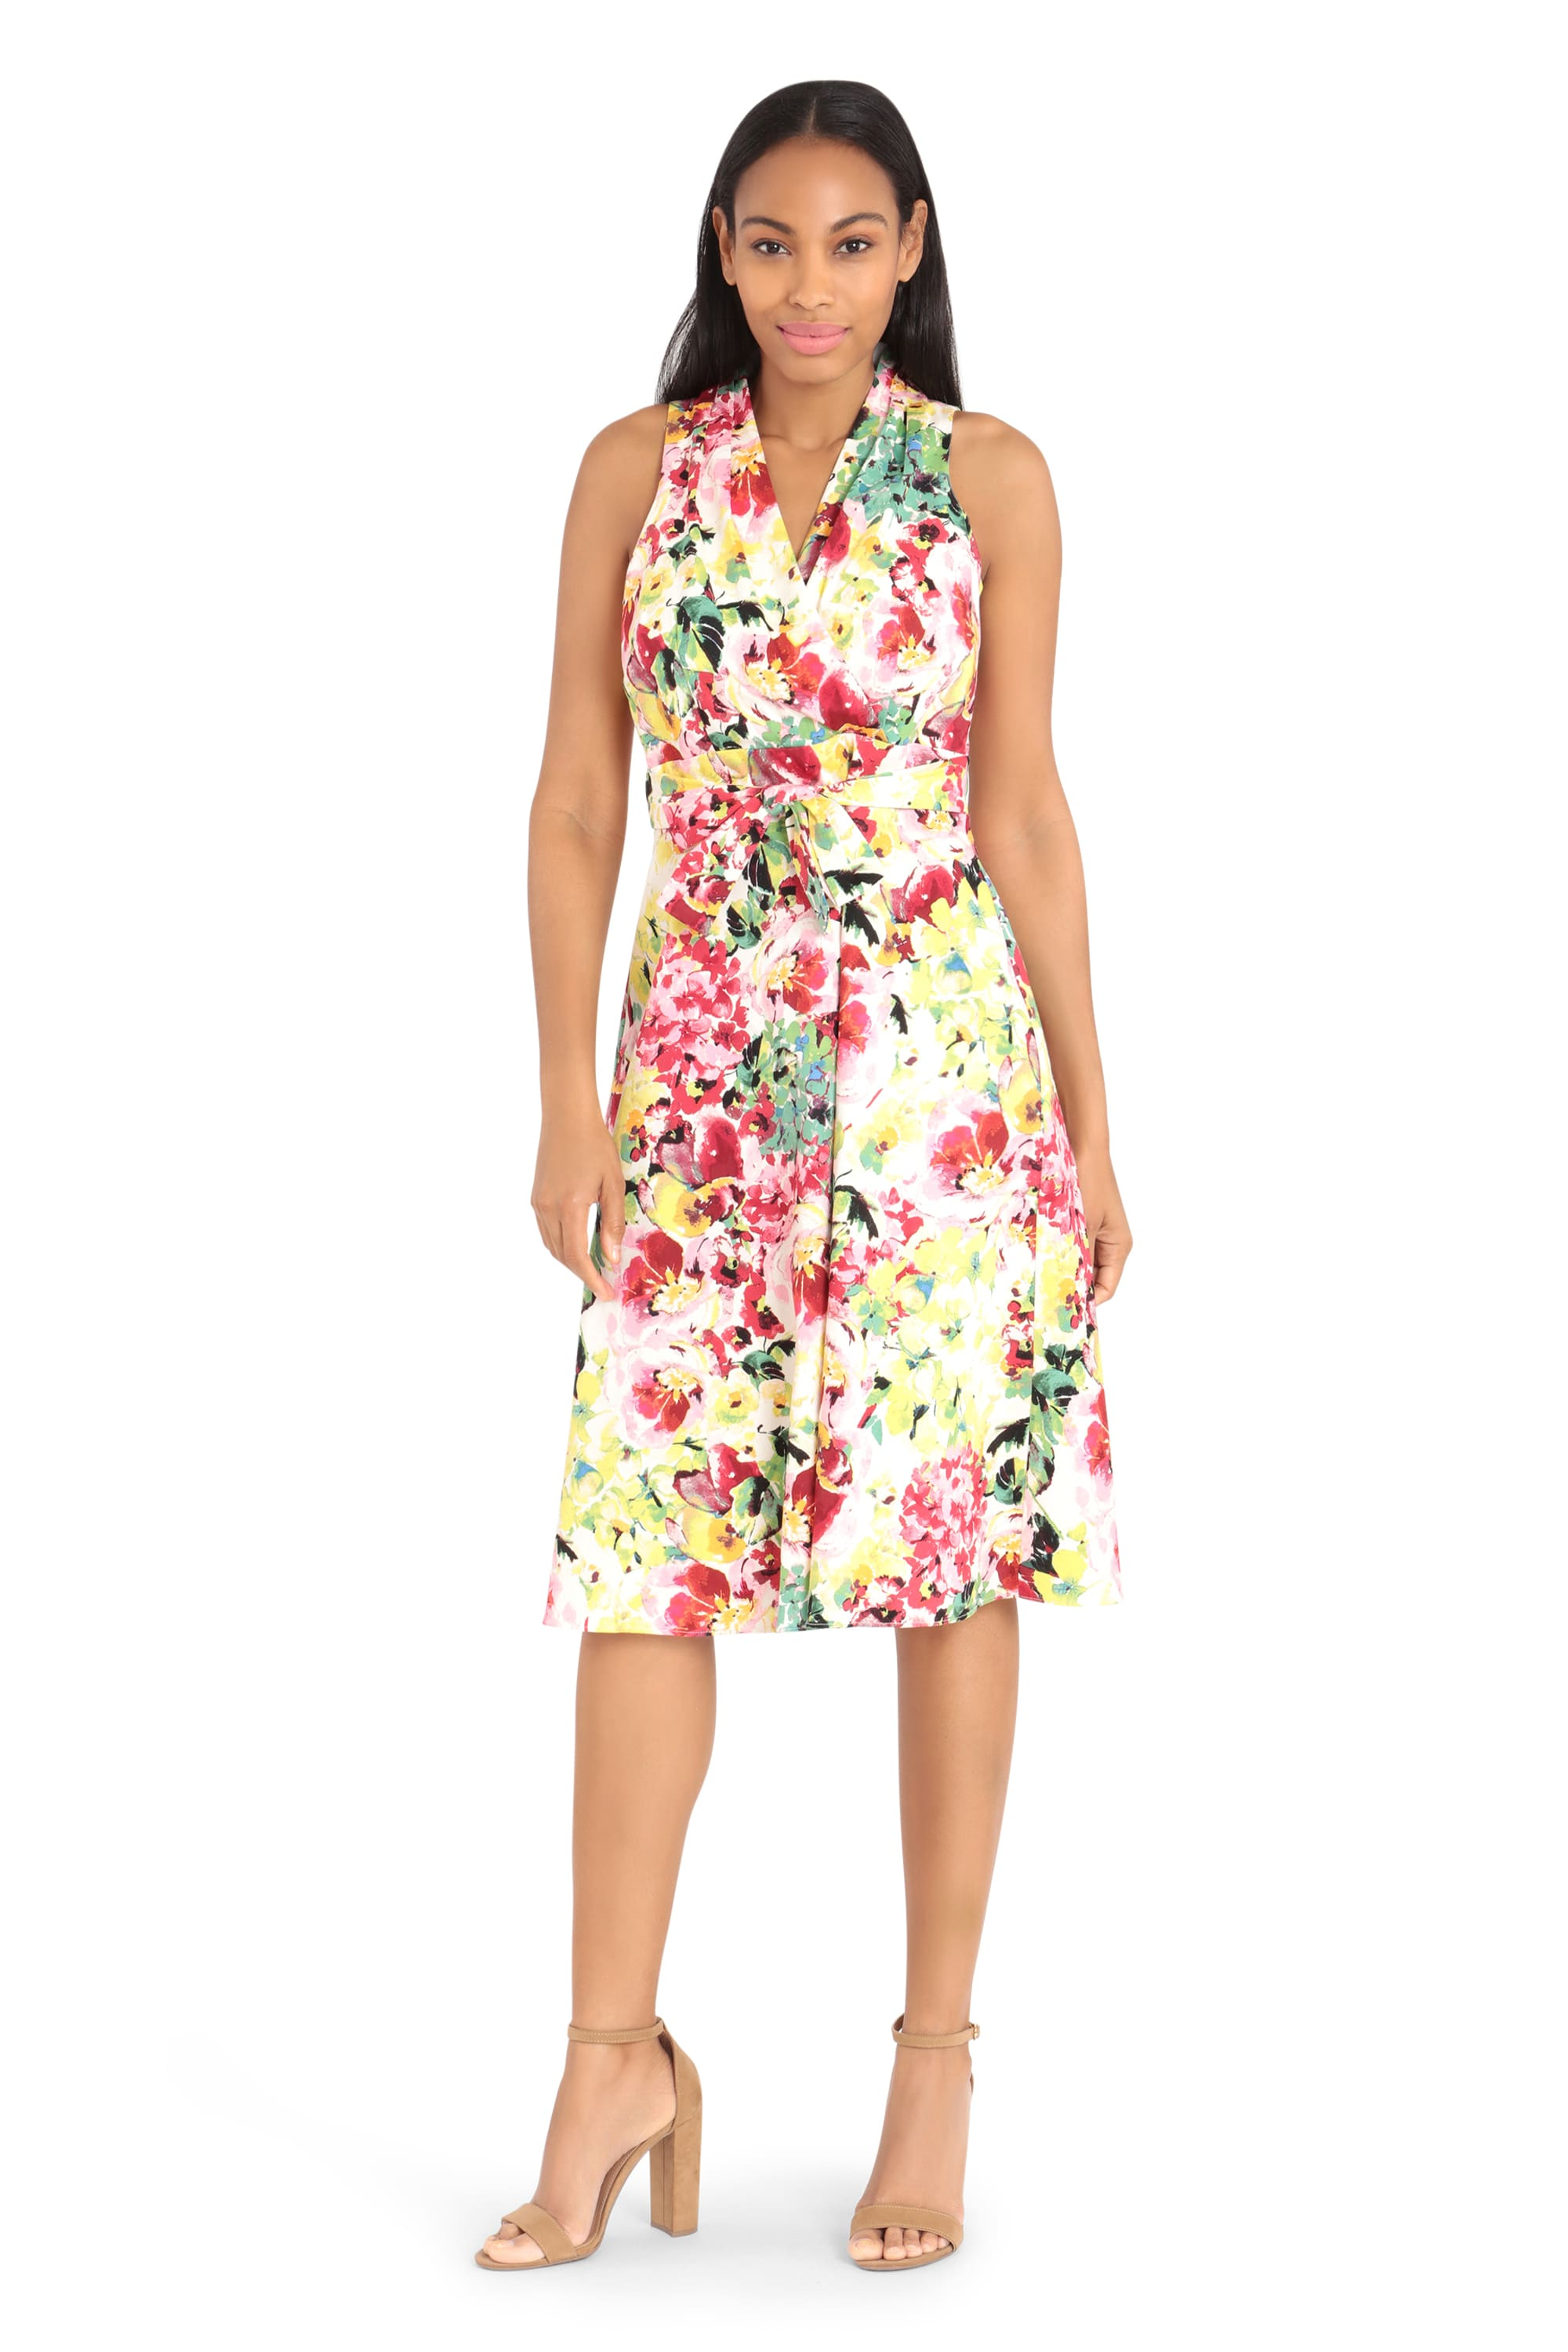 Summer Colors Floral Dress - Multi - Front